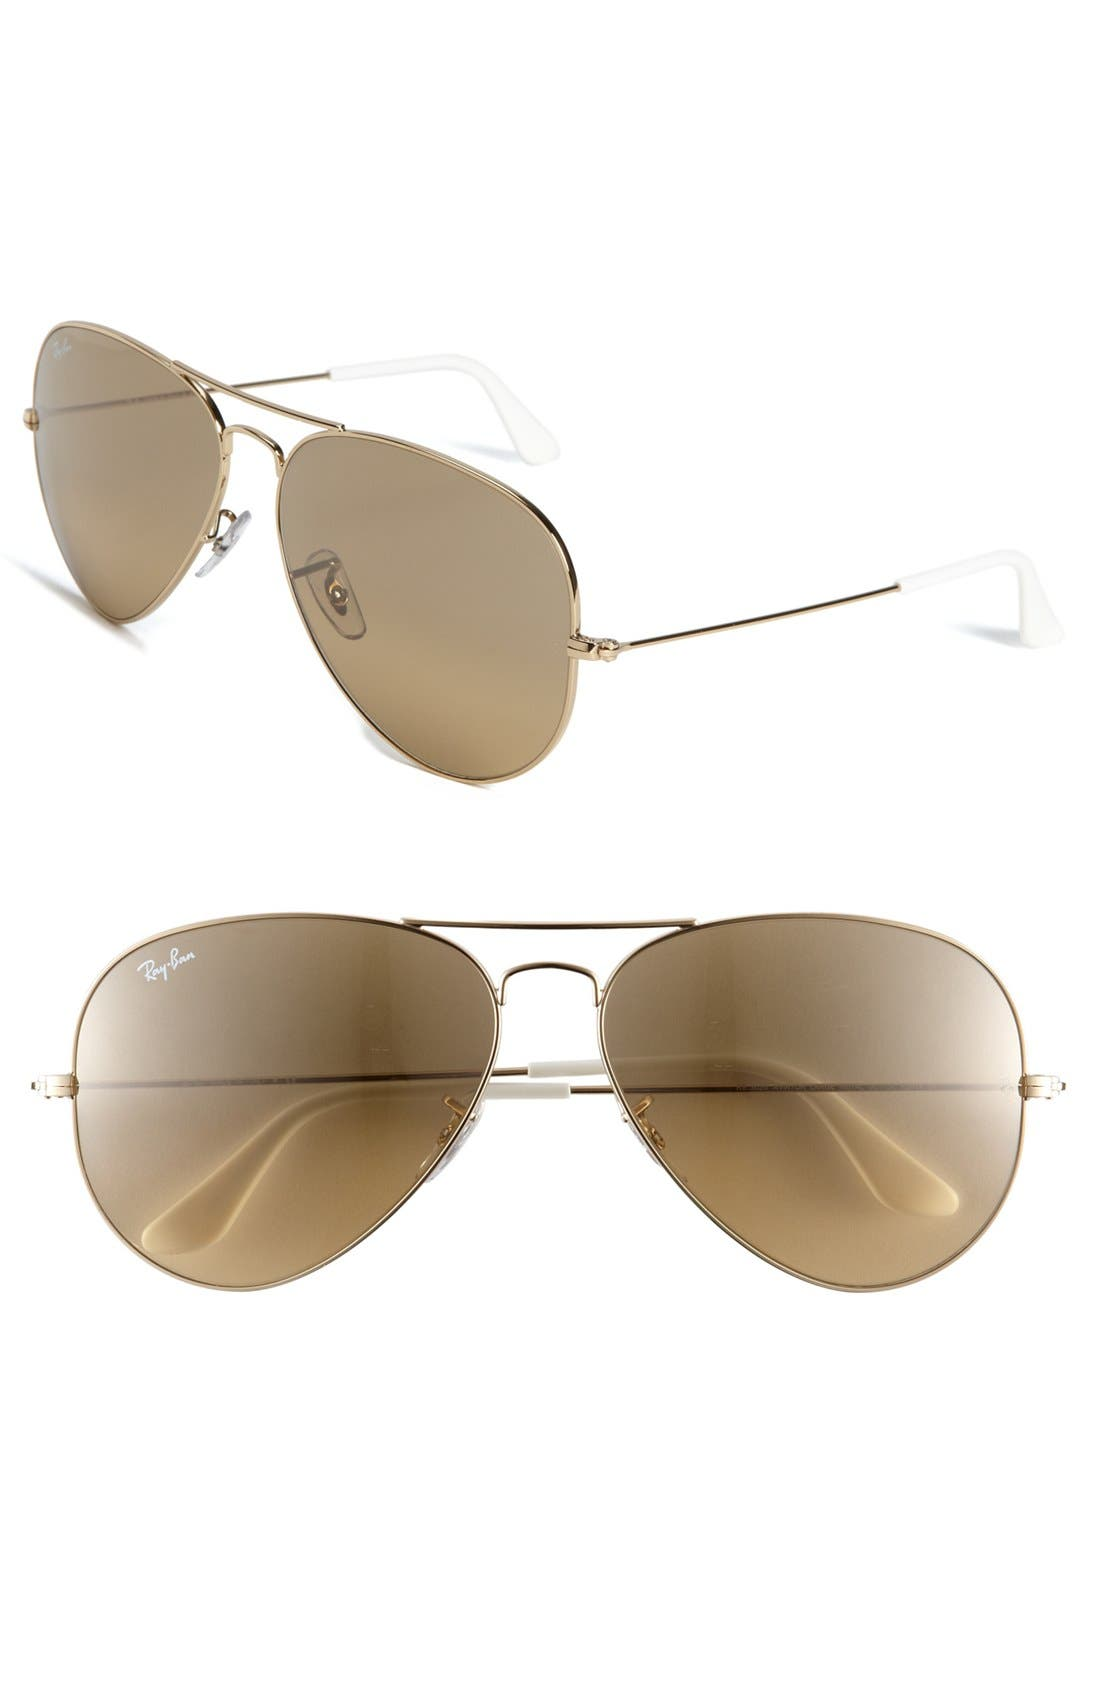 Alternate Image 1 Selected - Ray-Ban Large Original 62mm Aviator Sunglasses